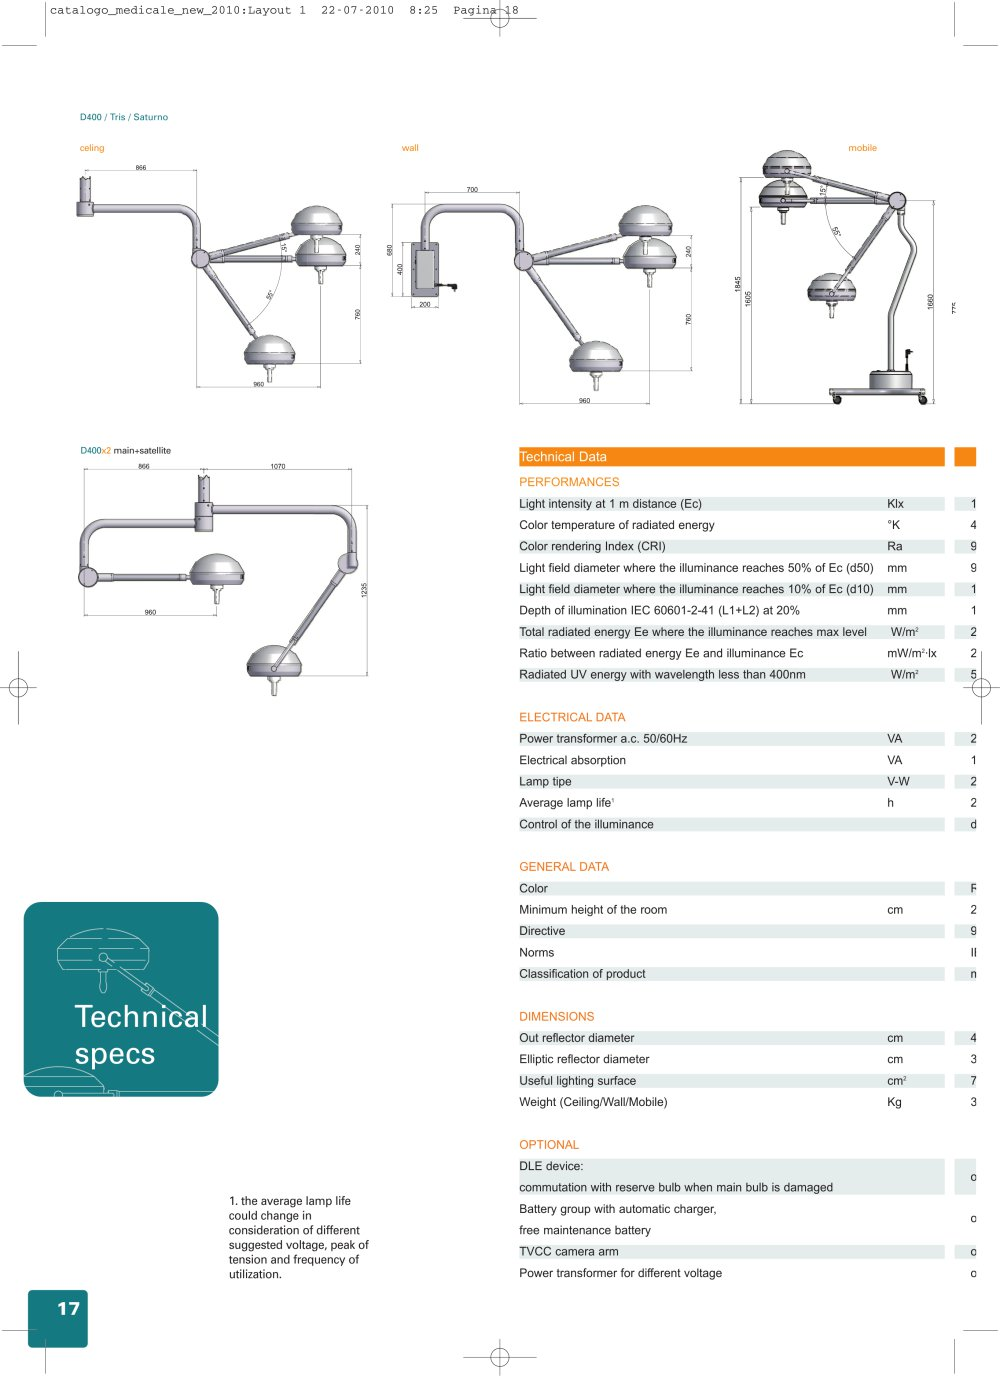 Technical data D-Series Halogen Lights - 1 / 2 Pages  sc 1 st  Catalogues Medicalexpo & Technical data D-Series Halogen Lights - RIMSA - PDF Catalogue ... azcodes.com